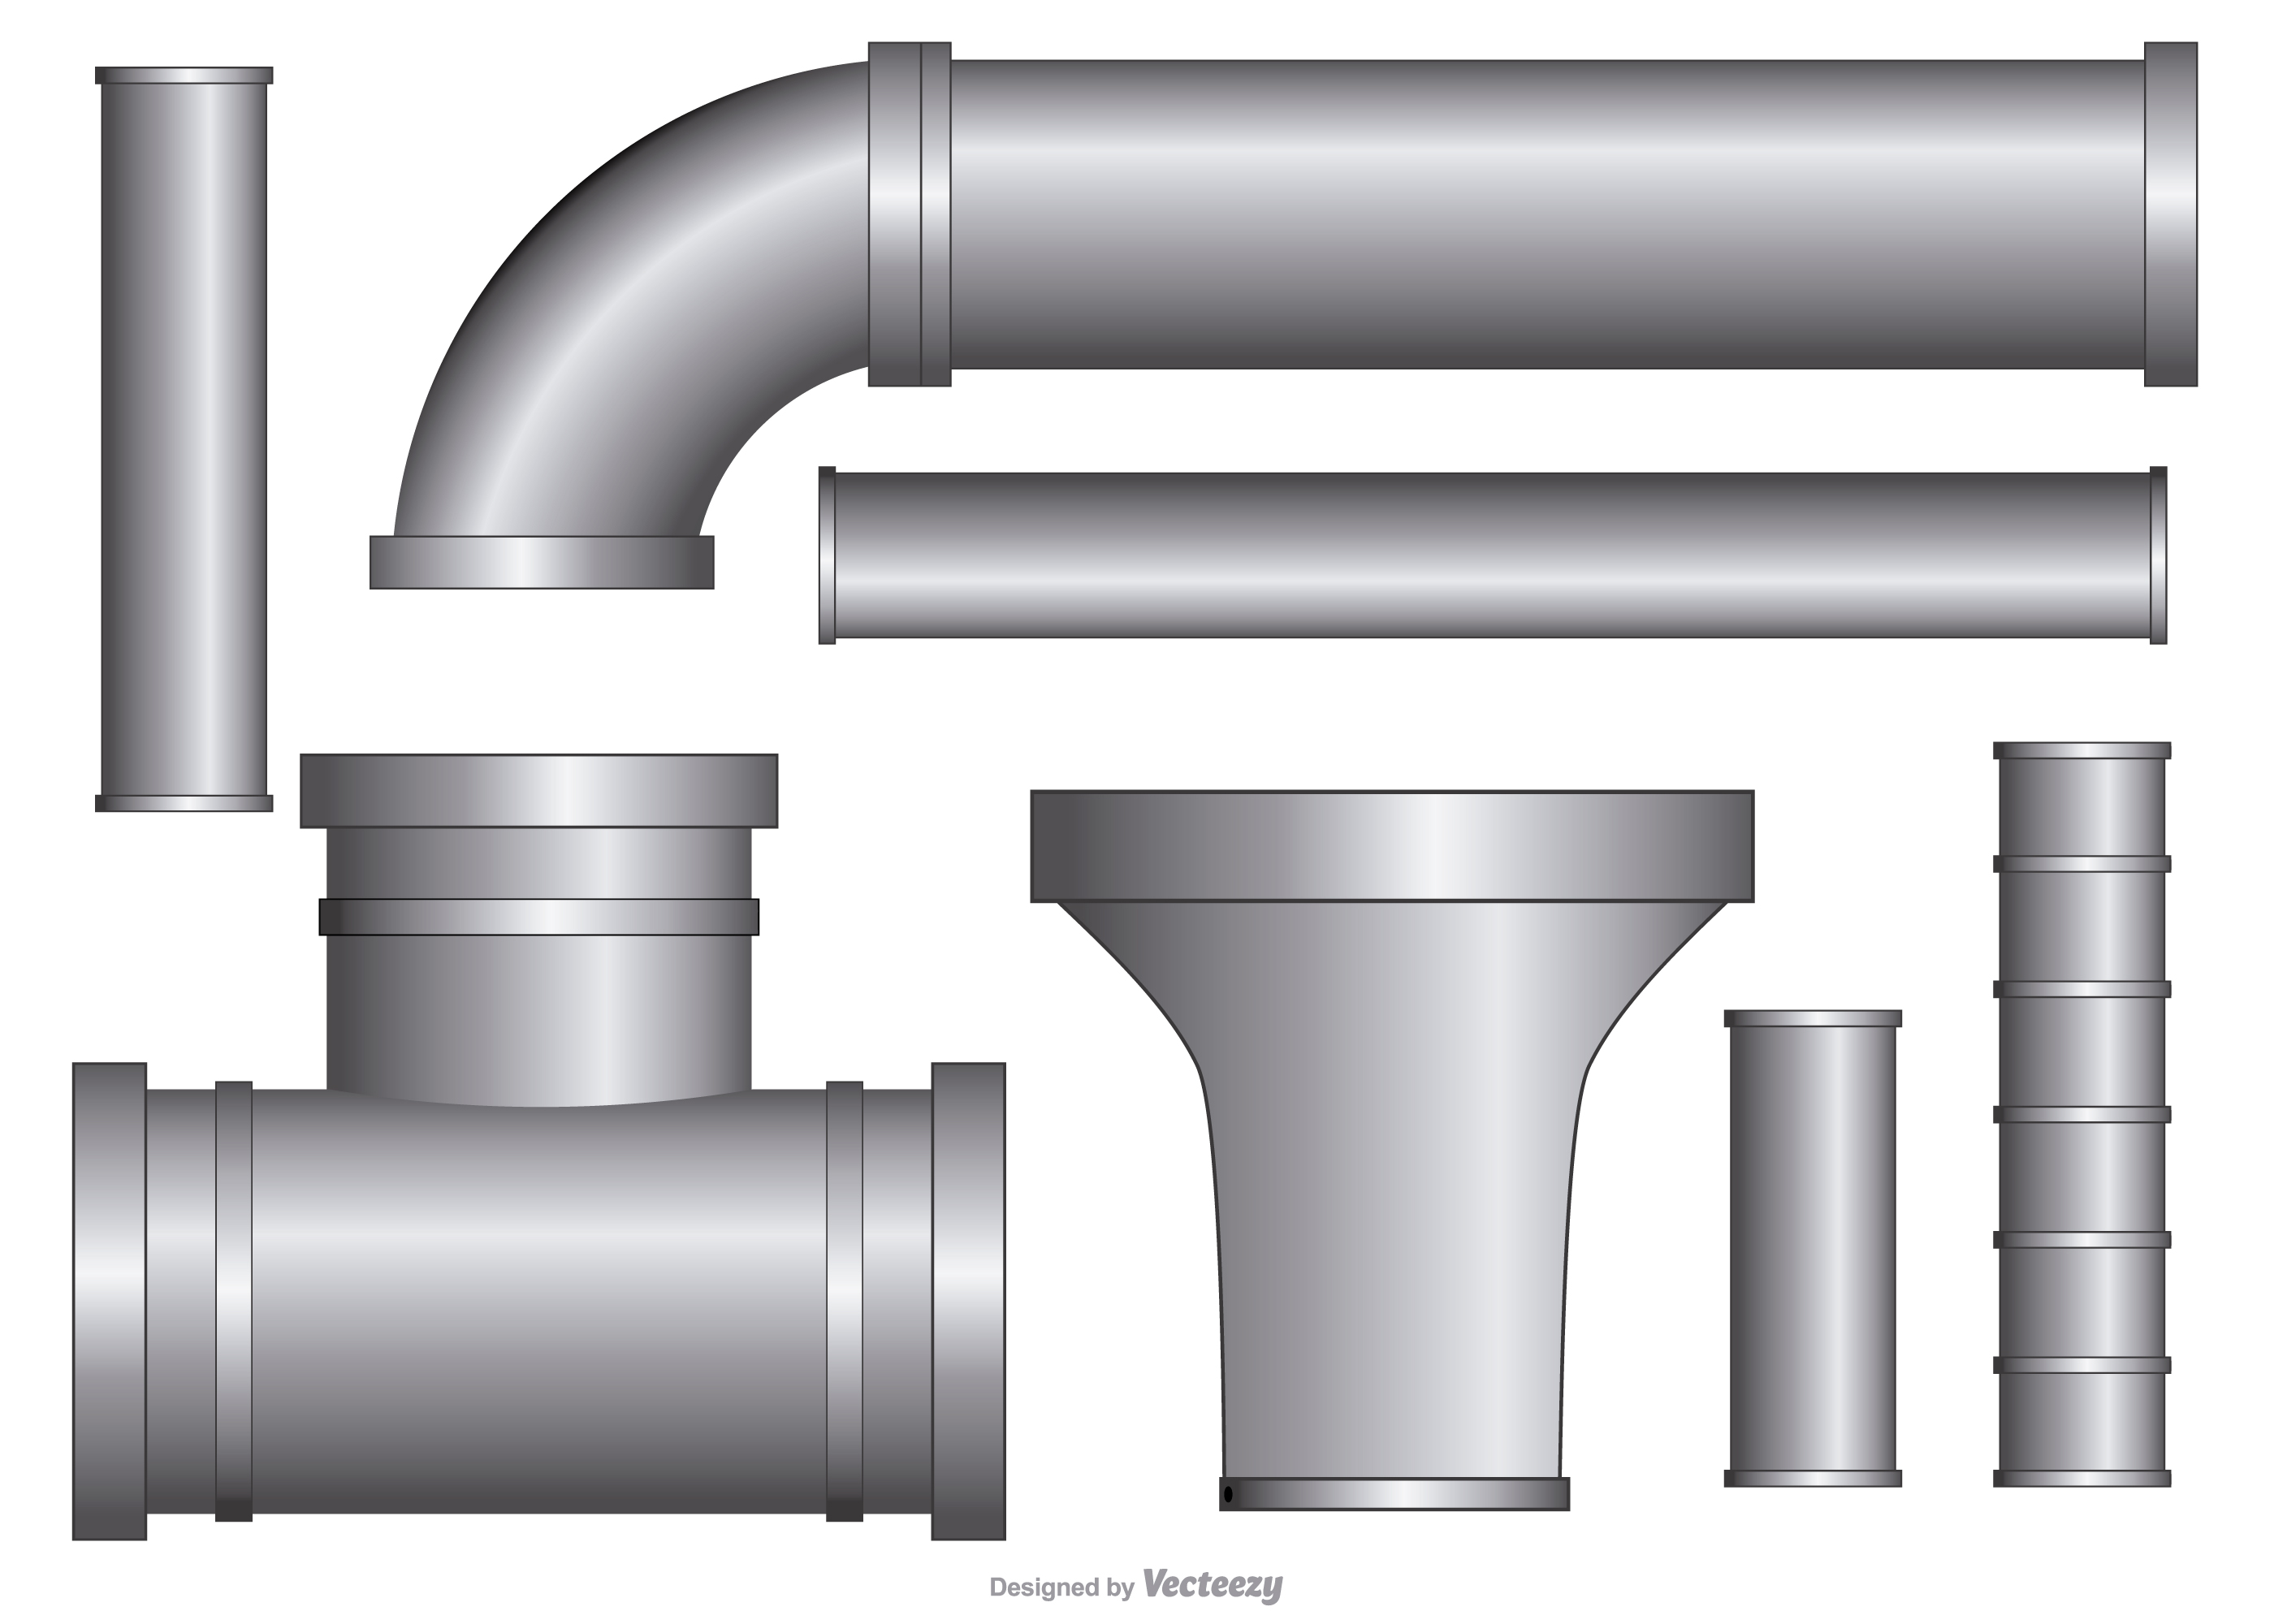 Vector Sewer Pipe - Download Free Vector Art, Stock Graphics & Images